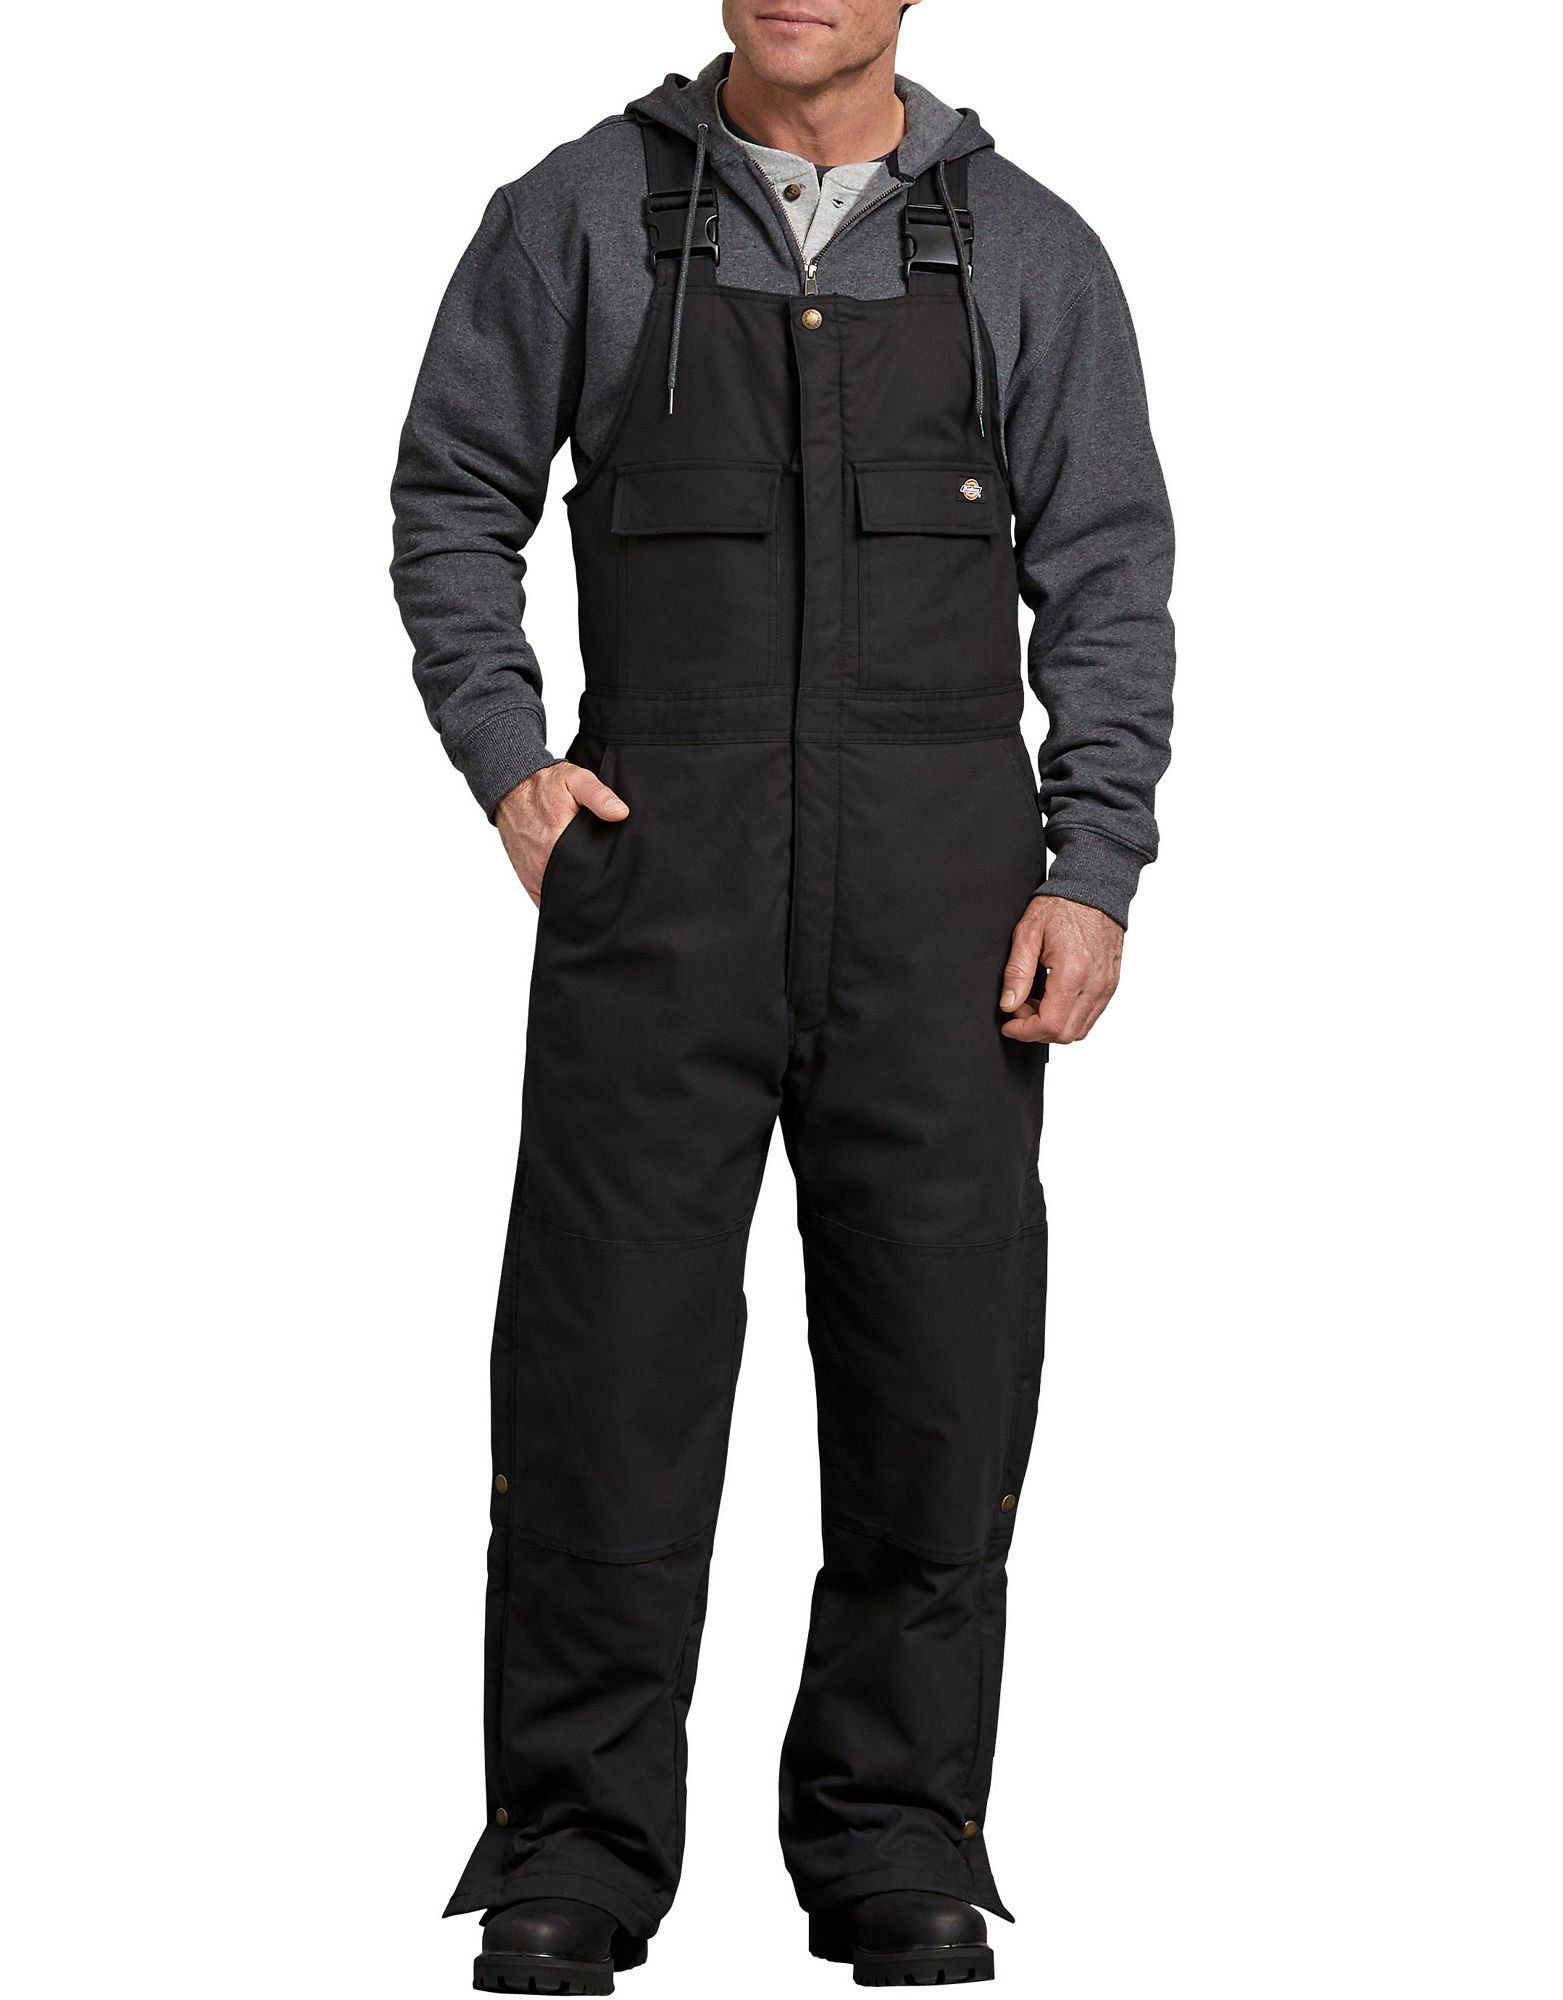 flex sanded duck insulated bib overalls black mens on best insulated coveralls for men id=81465